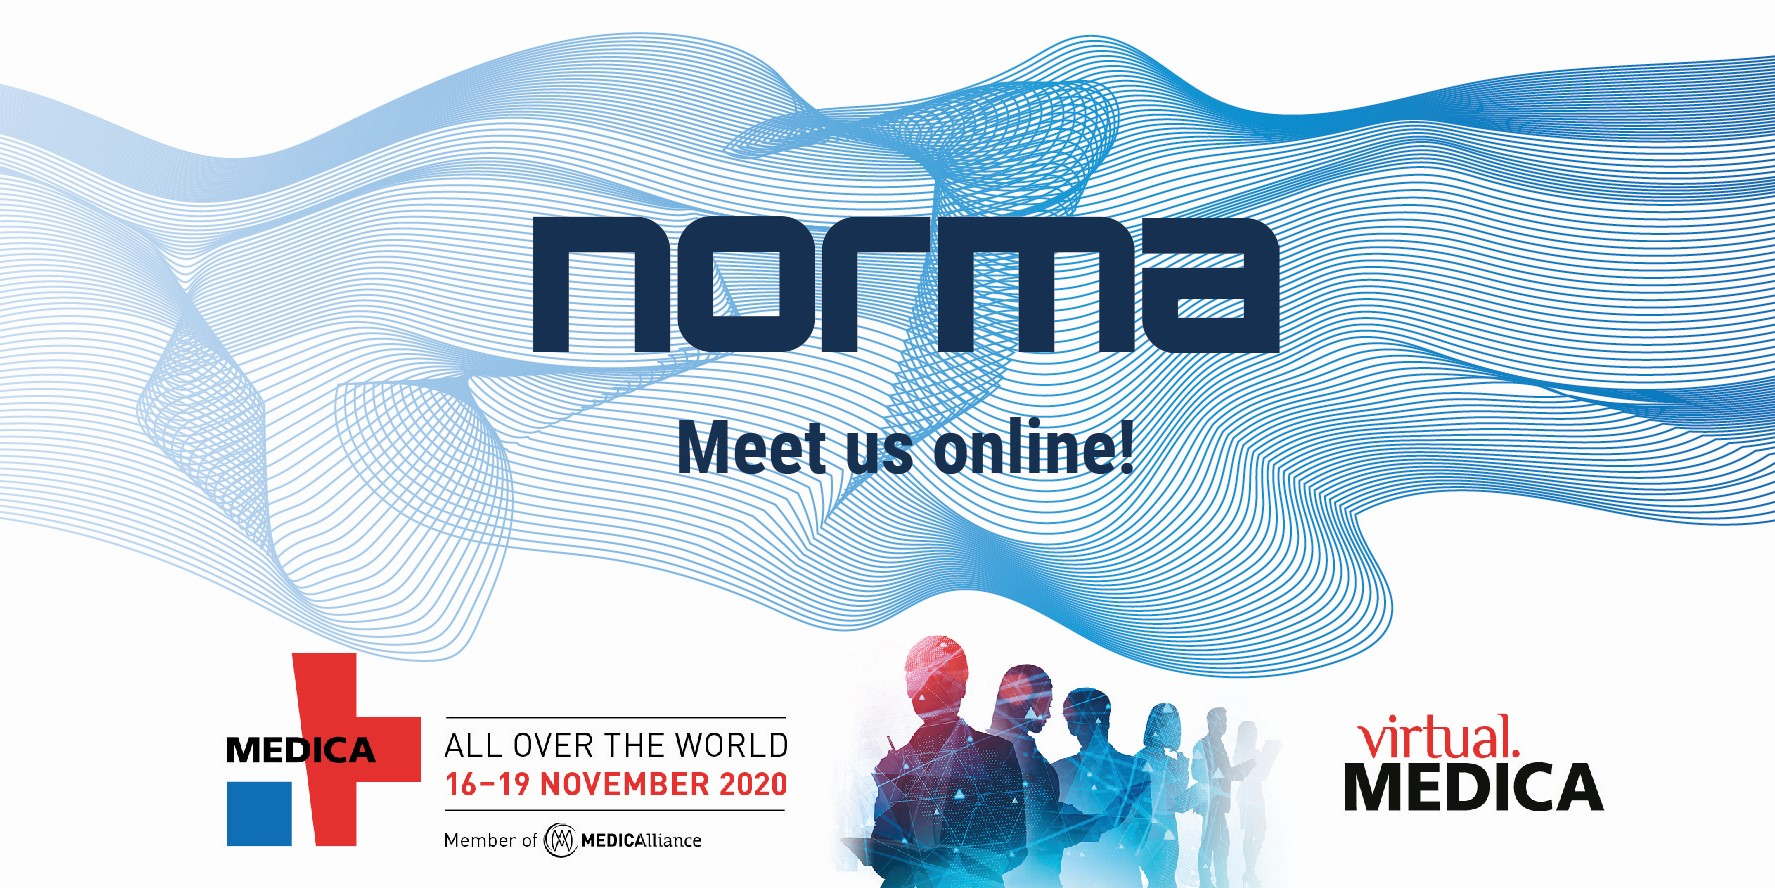 Meet Norma at virtual.Medica 2020